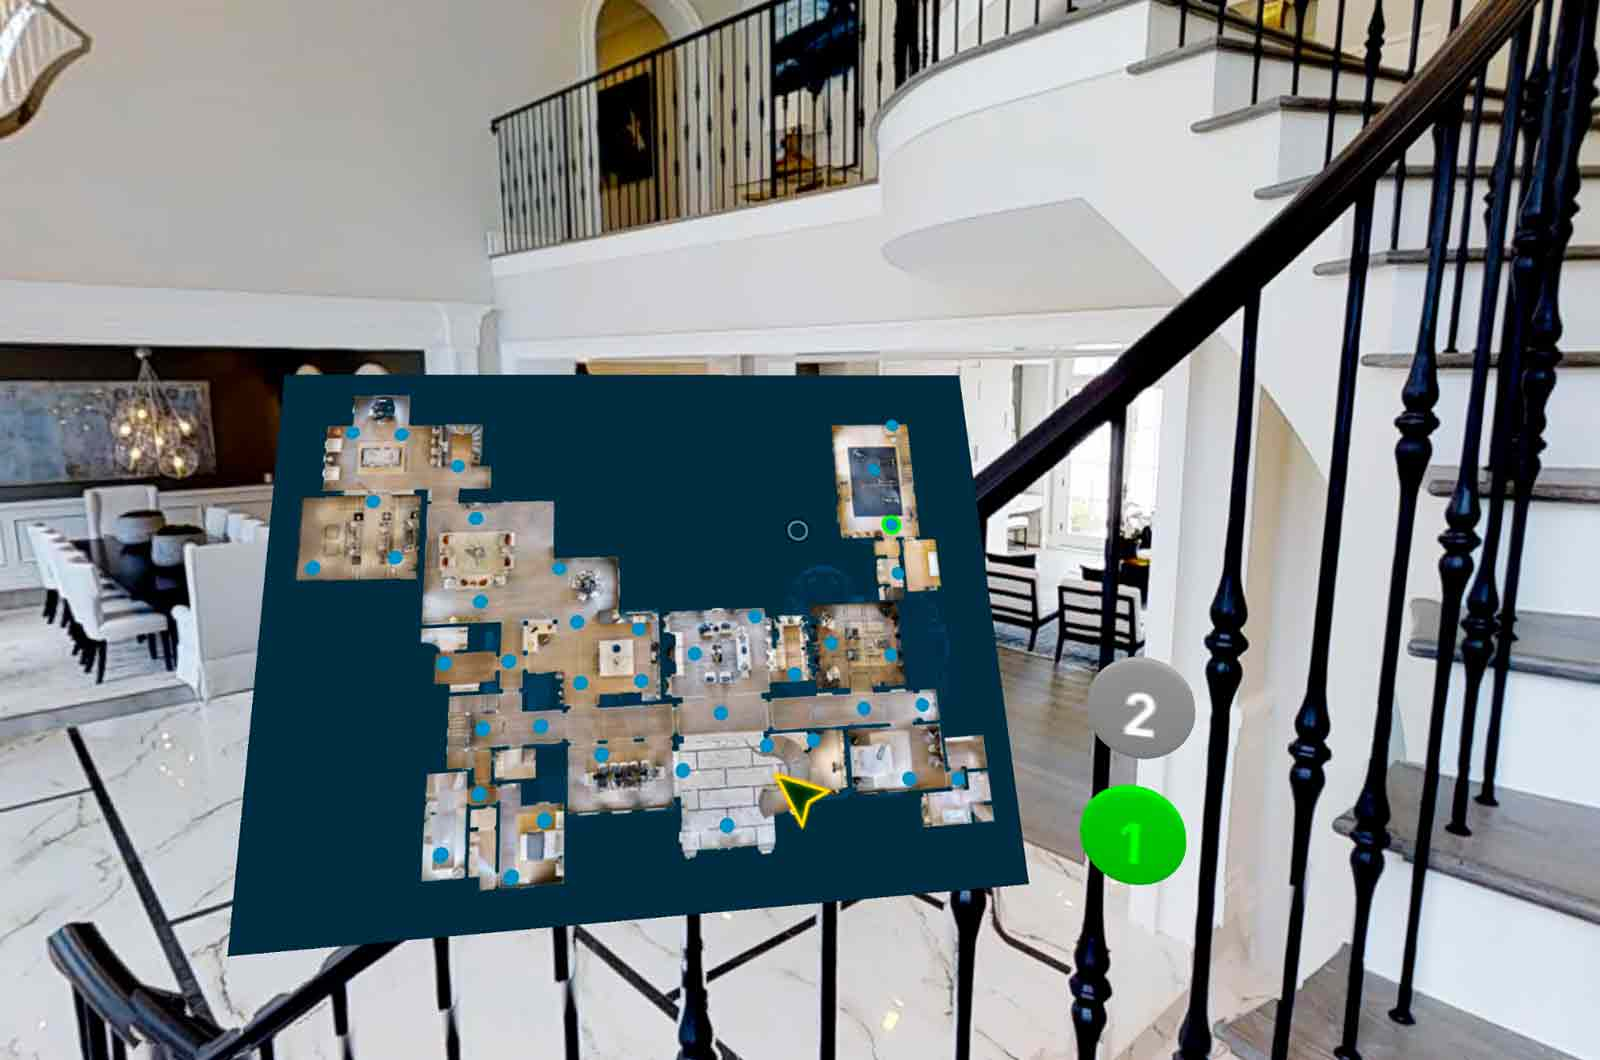 Feat-Image-VR-3D-Tour-Floor-Navigation